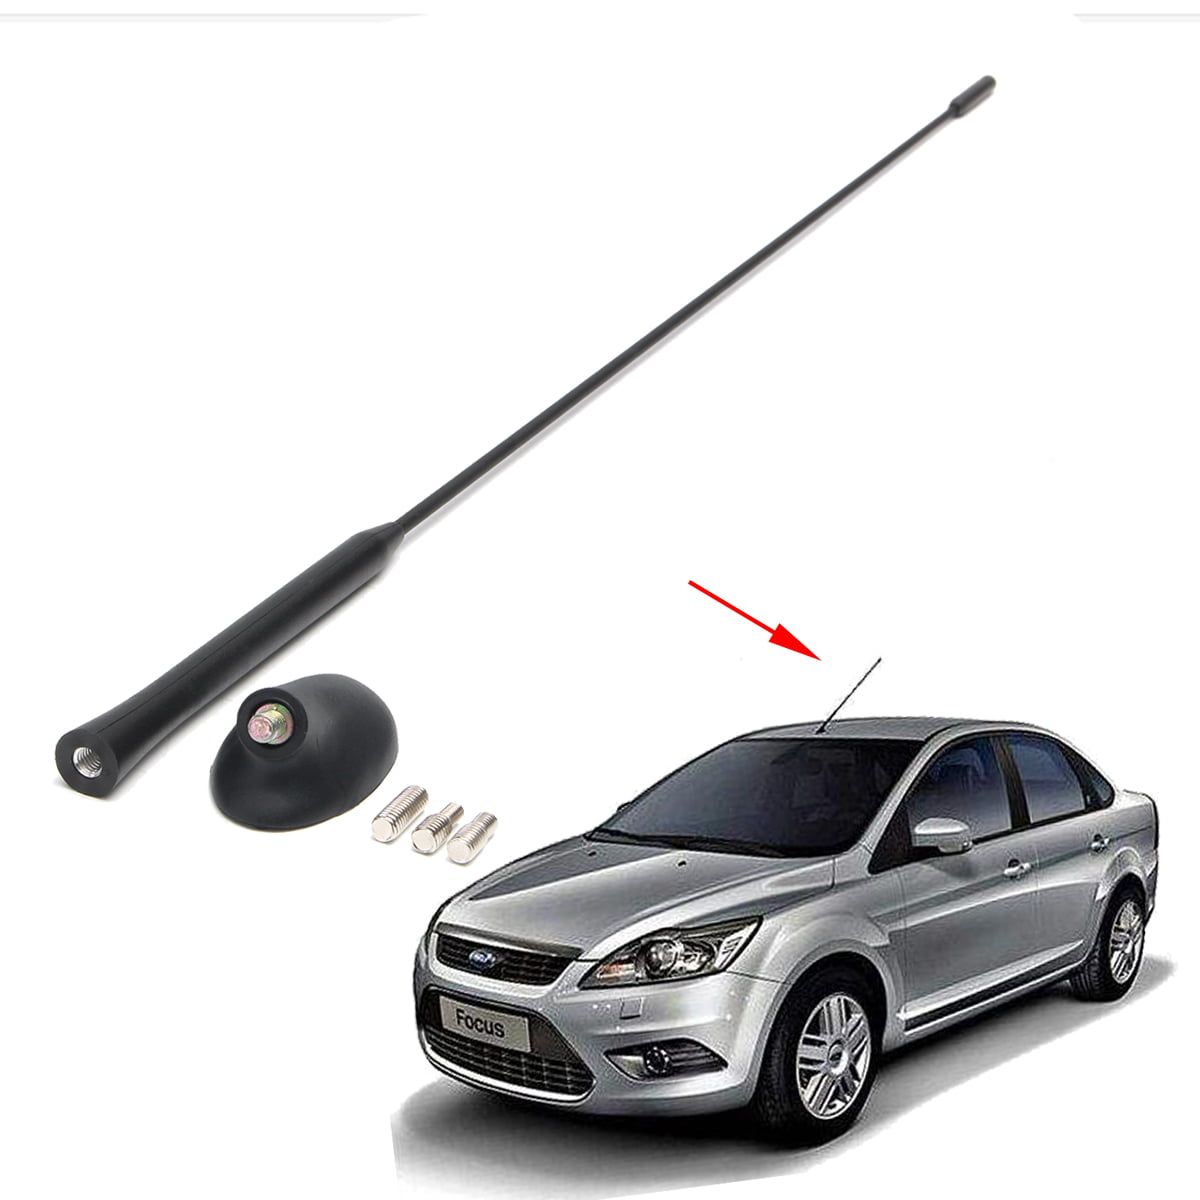 LCBIAO/® Car Radio Roof Mast Antenna Aerial AM//FM Base Automobiles Exterior Replacement Parts Fit For Ford Focus Models 2000-2007